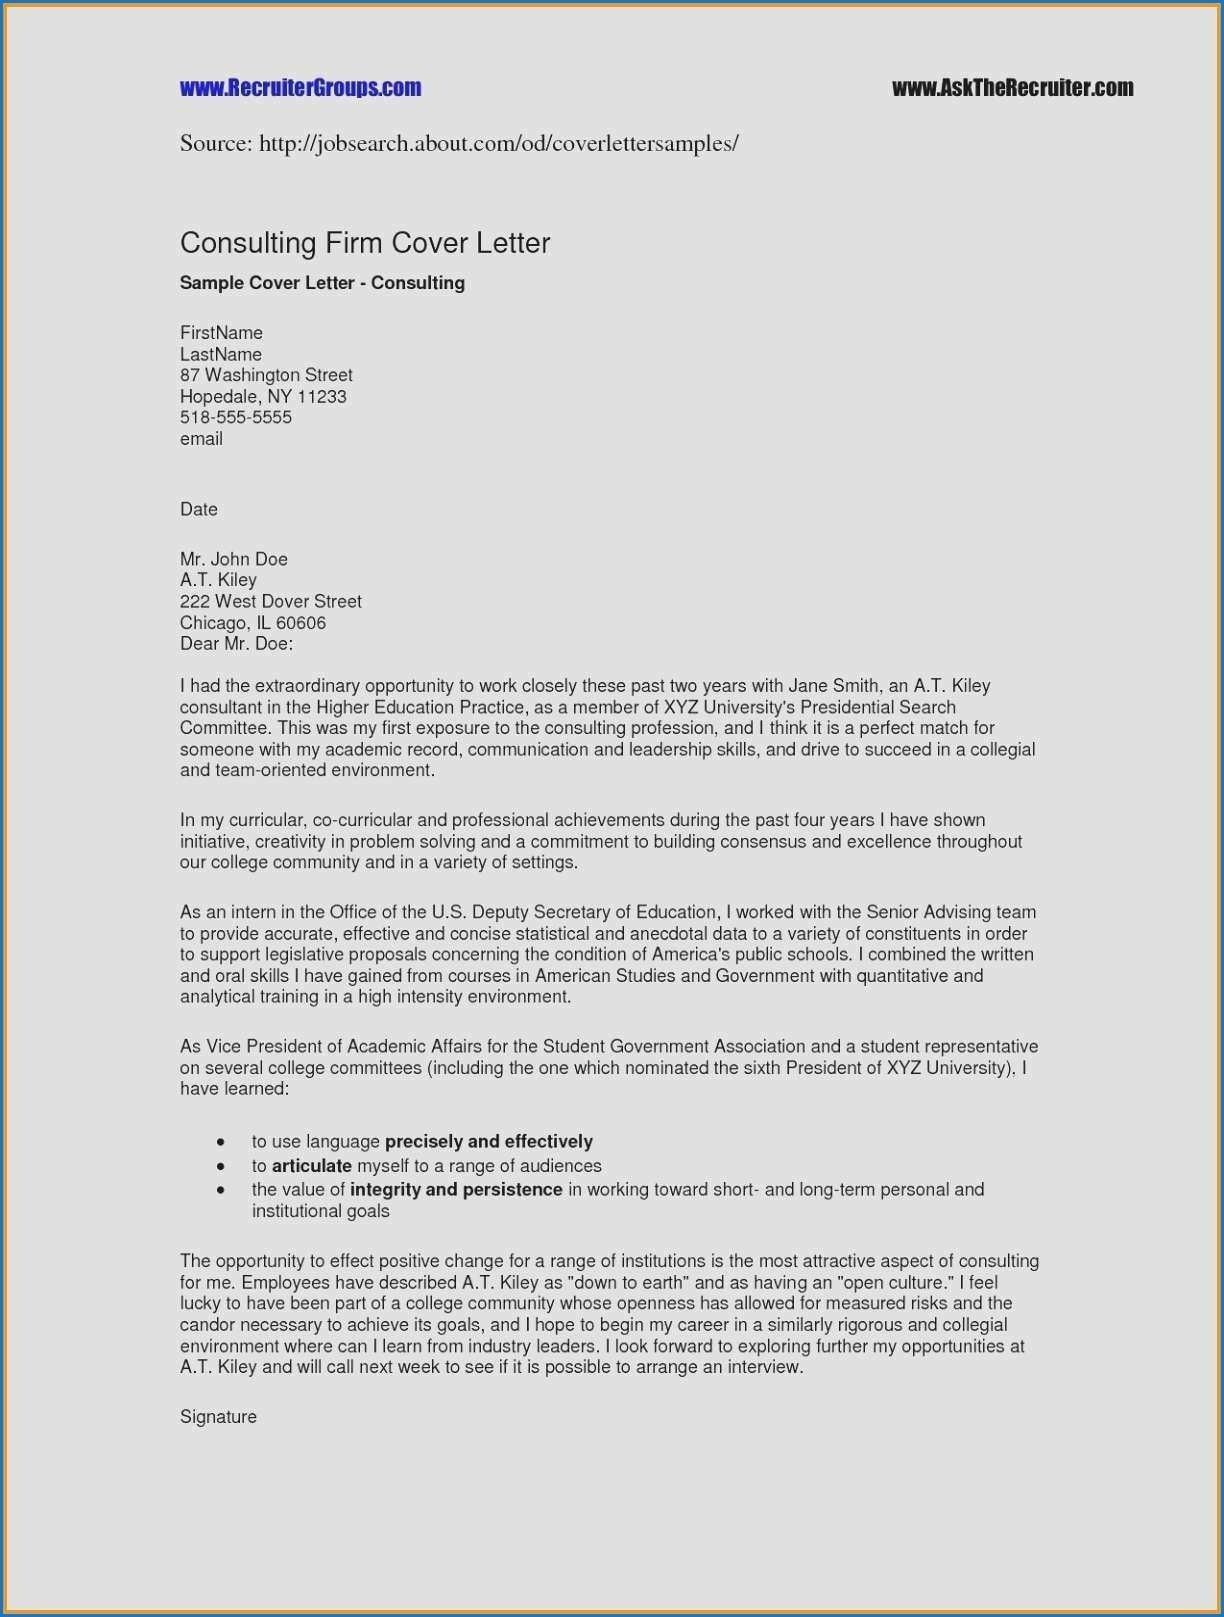 my resume lettersampel letterformat lettertemplate entry level administrative example for call center agent without experience profile examples career change